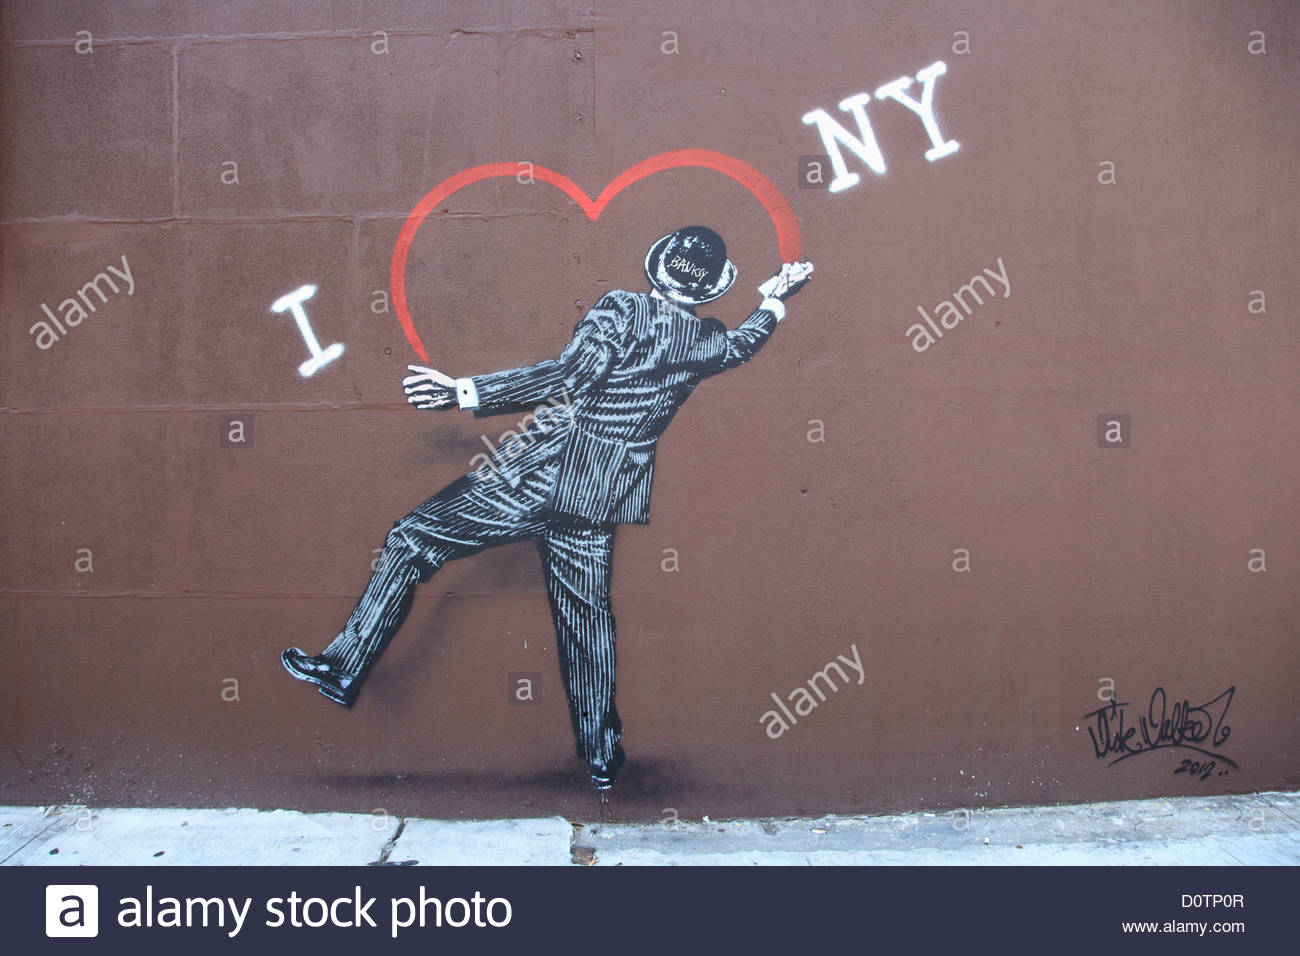 Street Art, Banksy Tribute senken East Side, Manhattan, New York City, USA Stockfoto